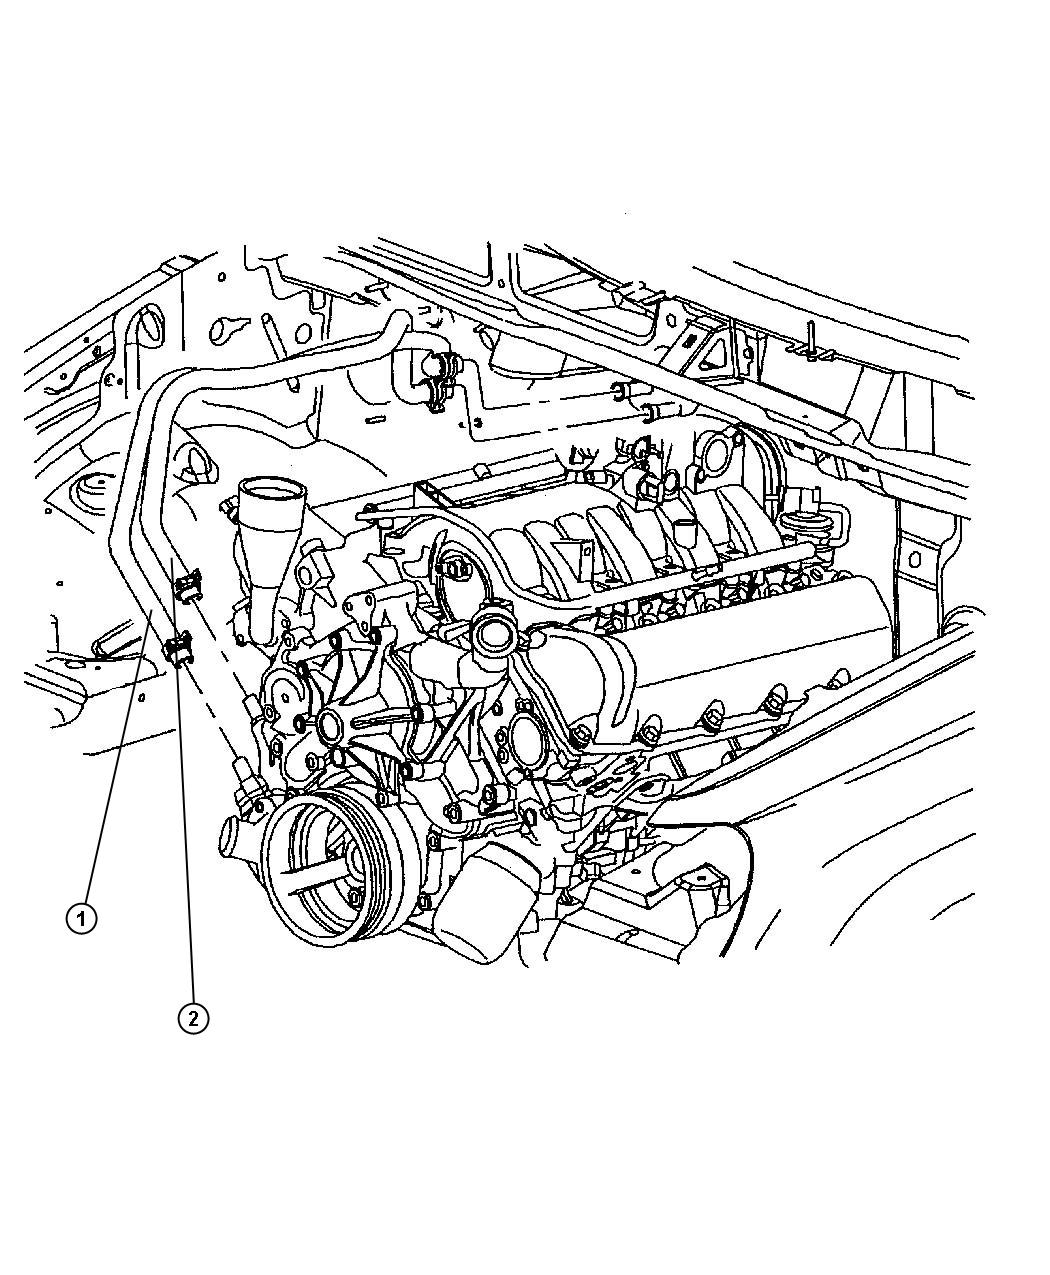 hight resolution of 2000 jeep wrangler transmission diagram 2001 jeep wrangler 1997 plymouth neon stereo wiring diagram 1998 plymouth neon wiring diagram